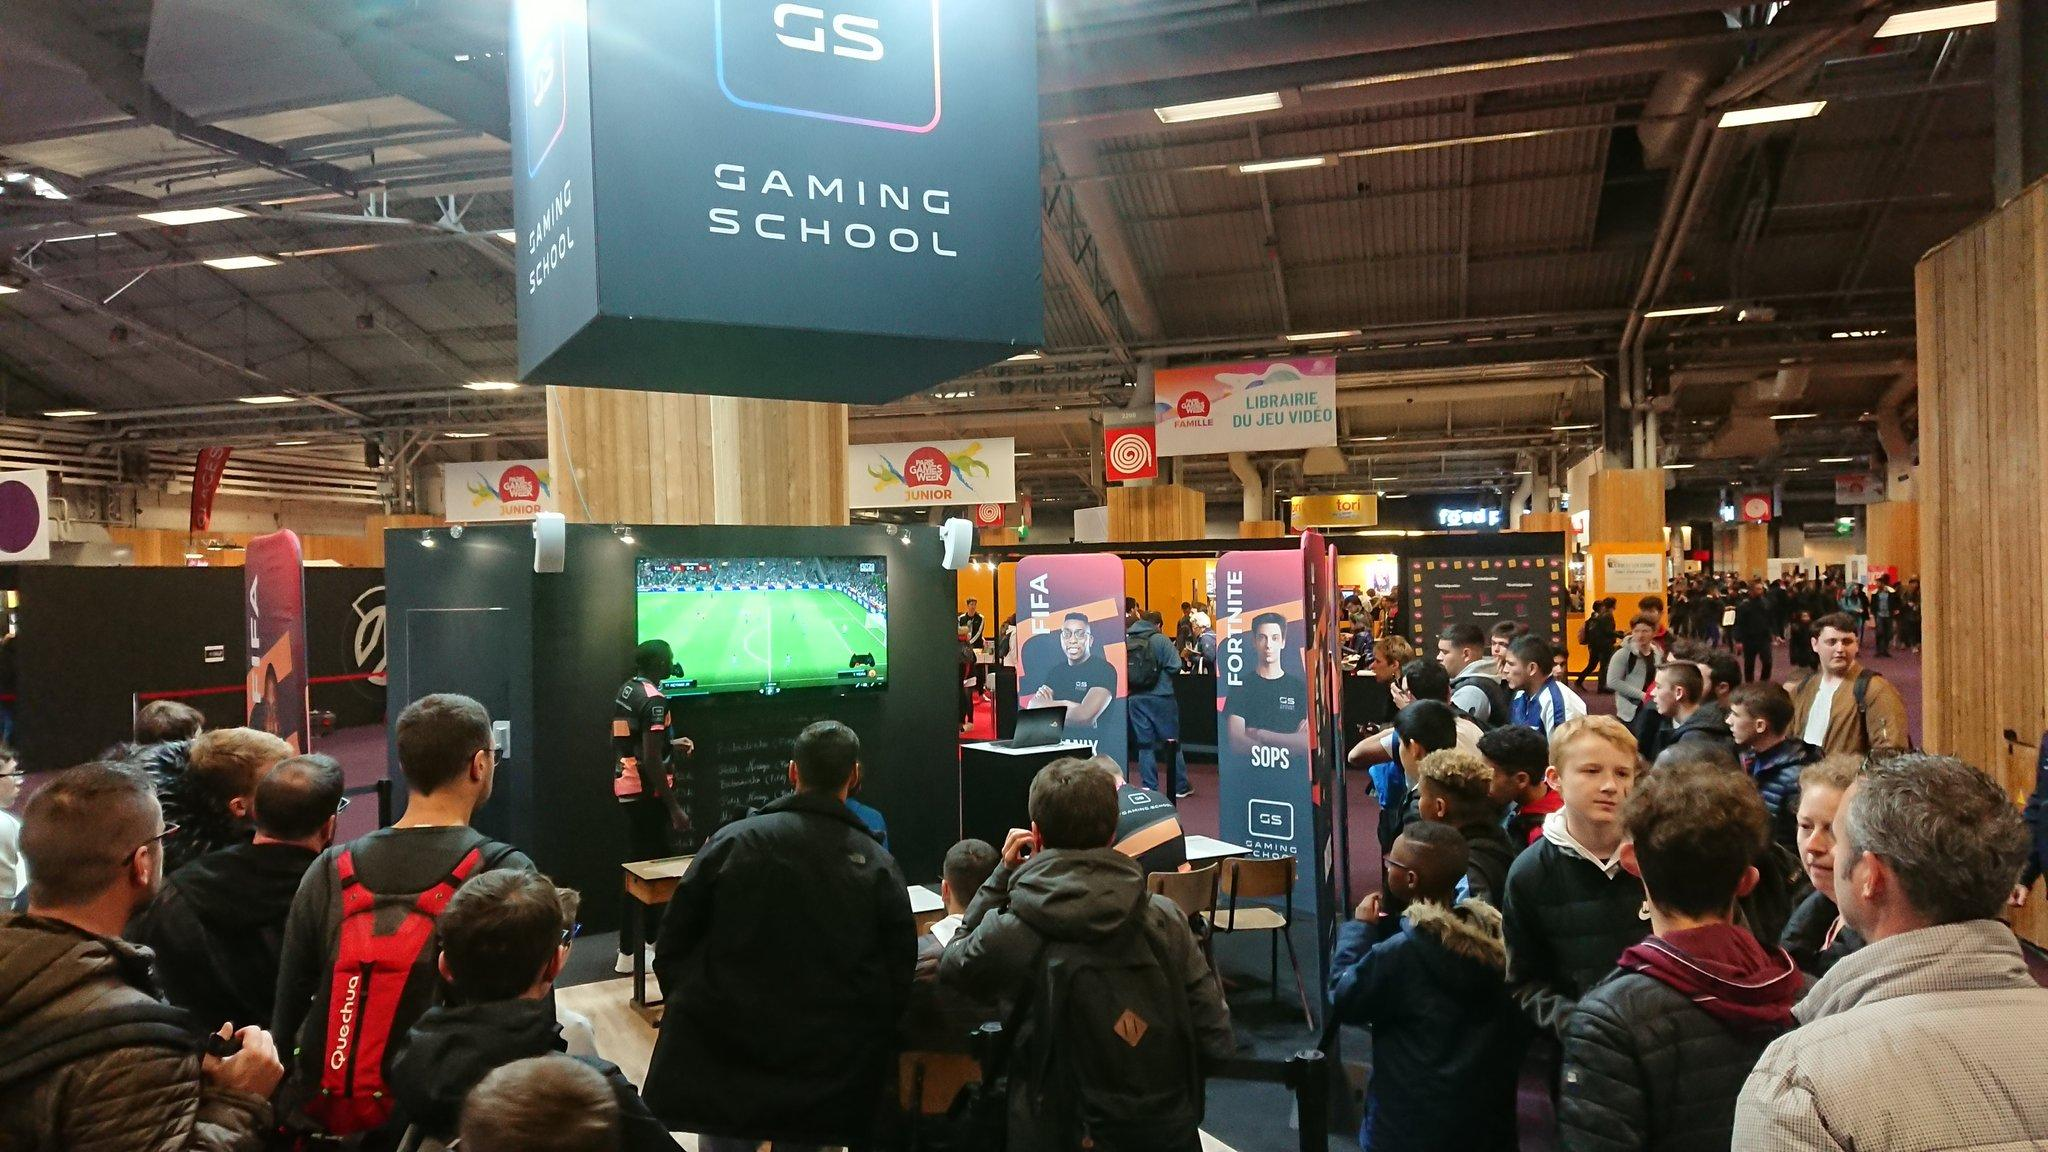 Masterclass Gaming School 2 - gamingcampus.Fr